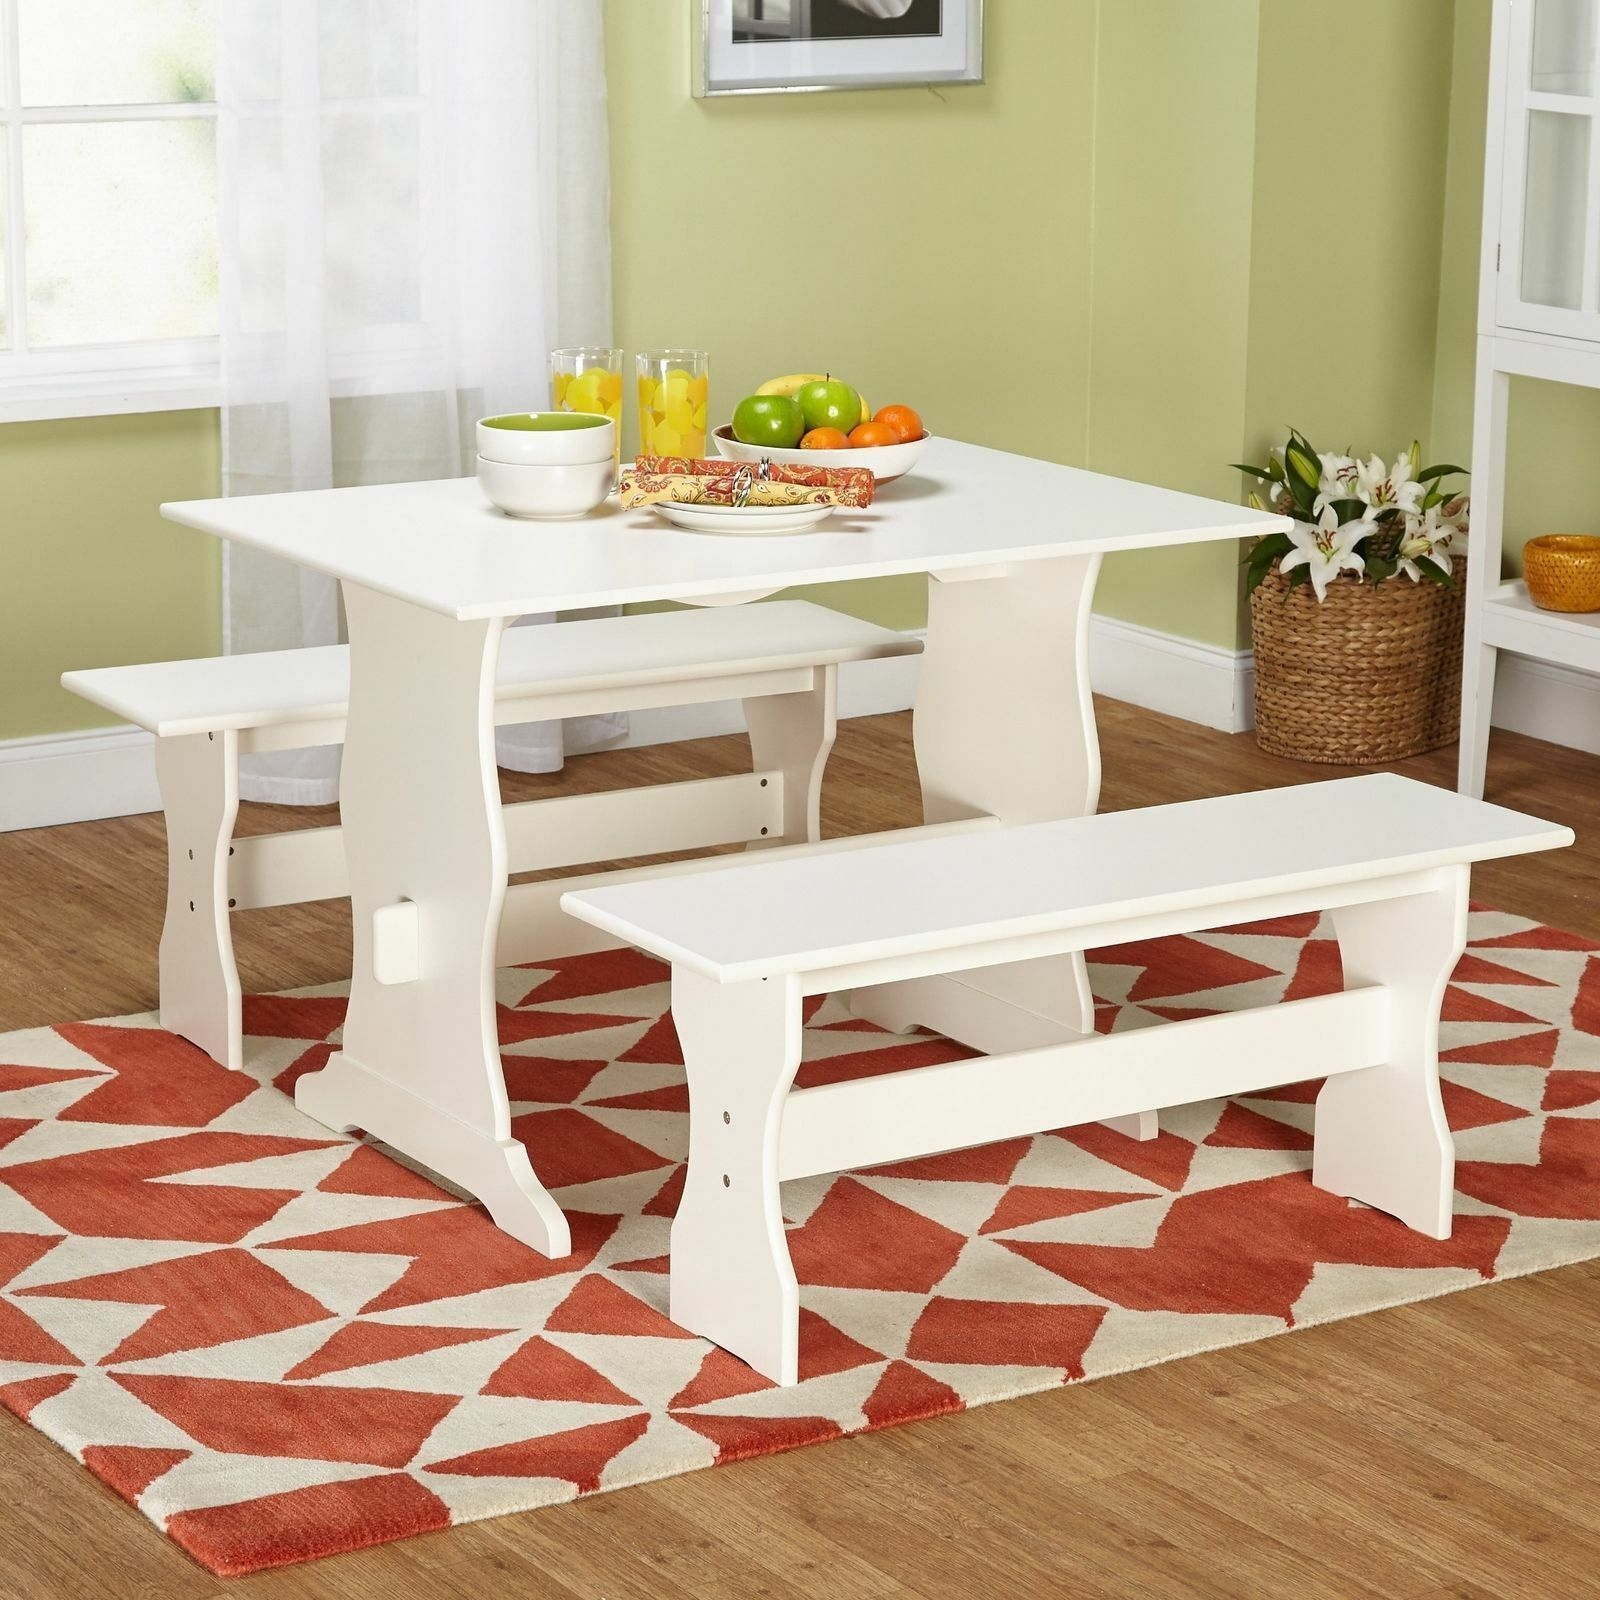 White 3 Pc Dining Set Wooden Kitchen Nook Breakfast Table Bench Family Dinette  Dining Sets